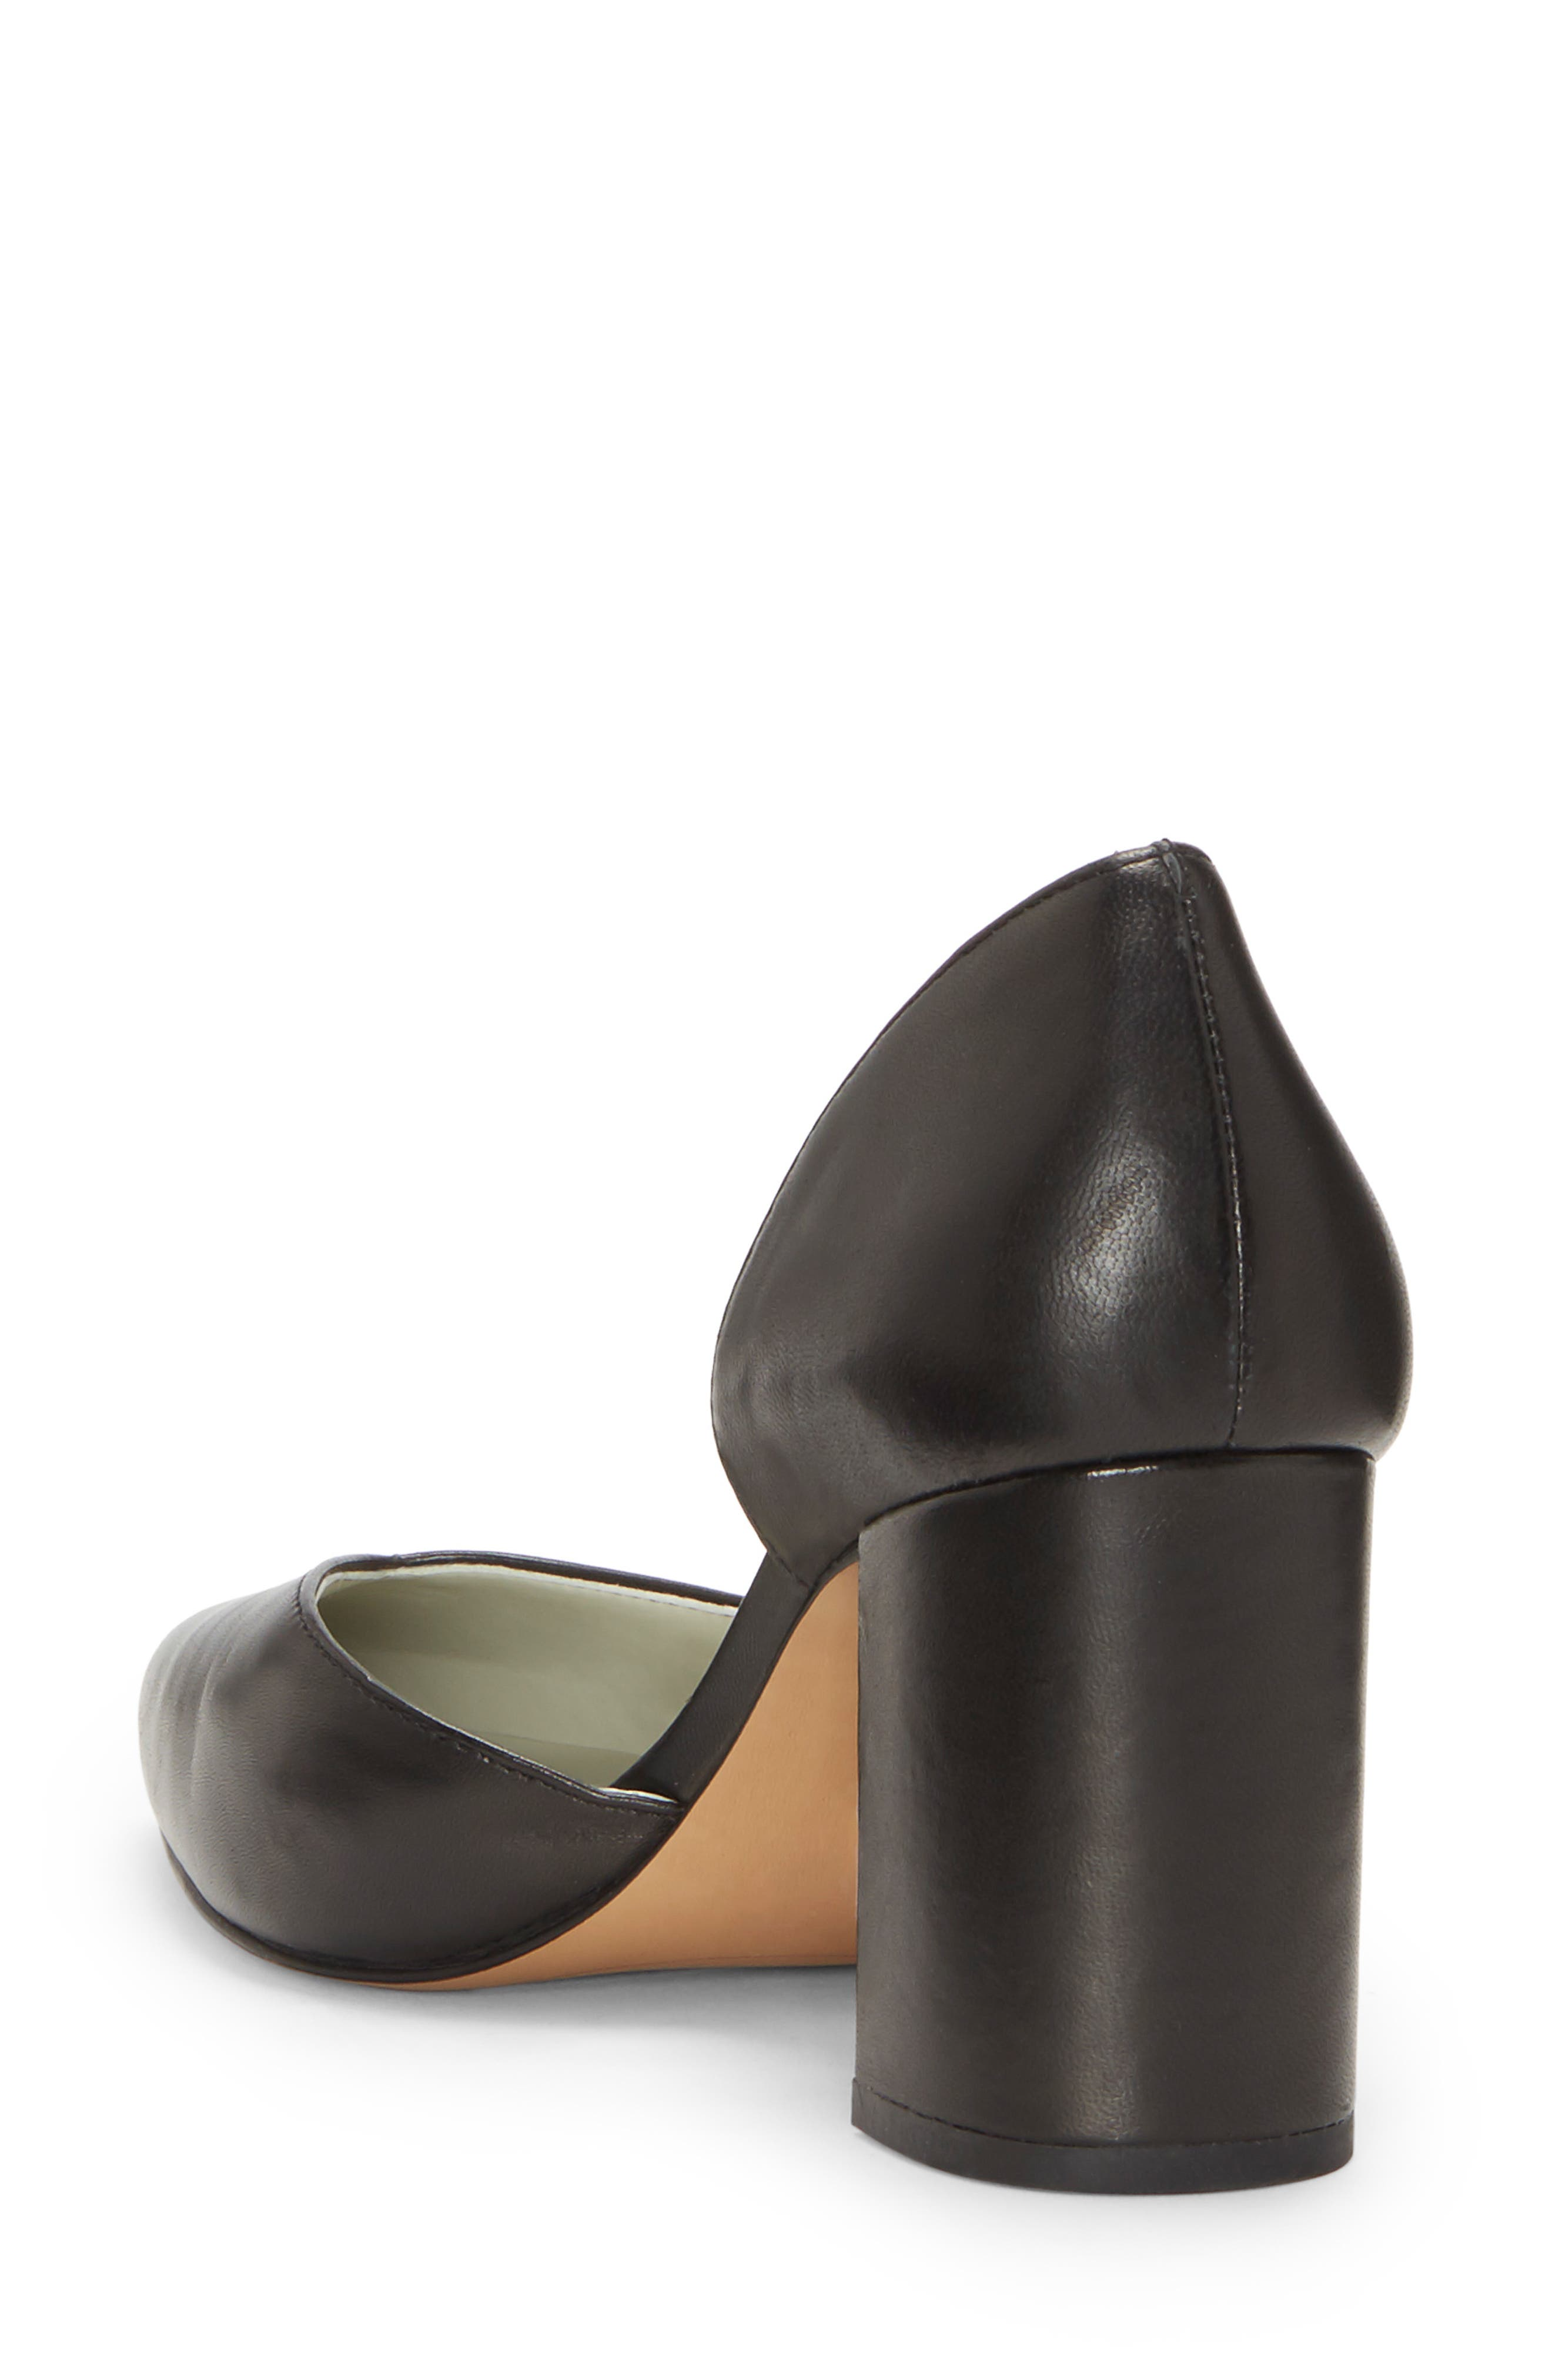 Sisteen Half d'Orsay Pump,                             Alternate thumbnail 2, color,                             BLACK LEATHER